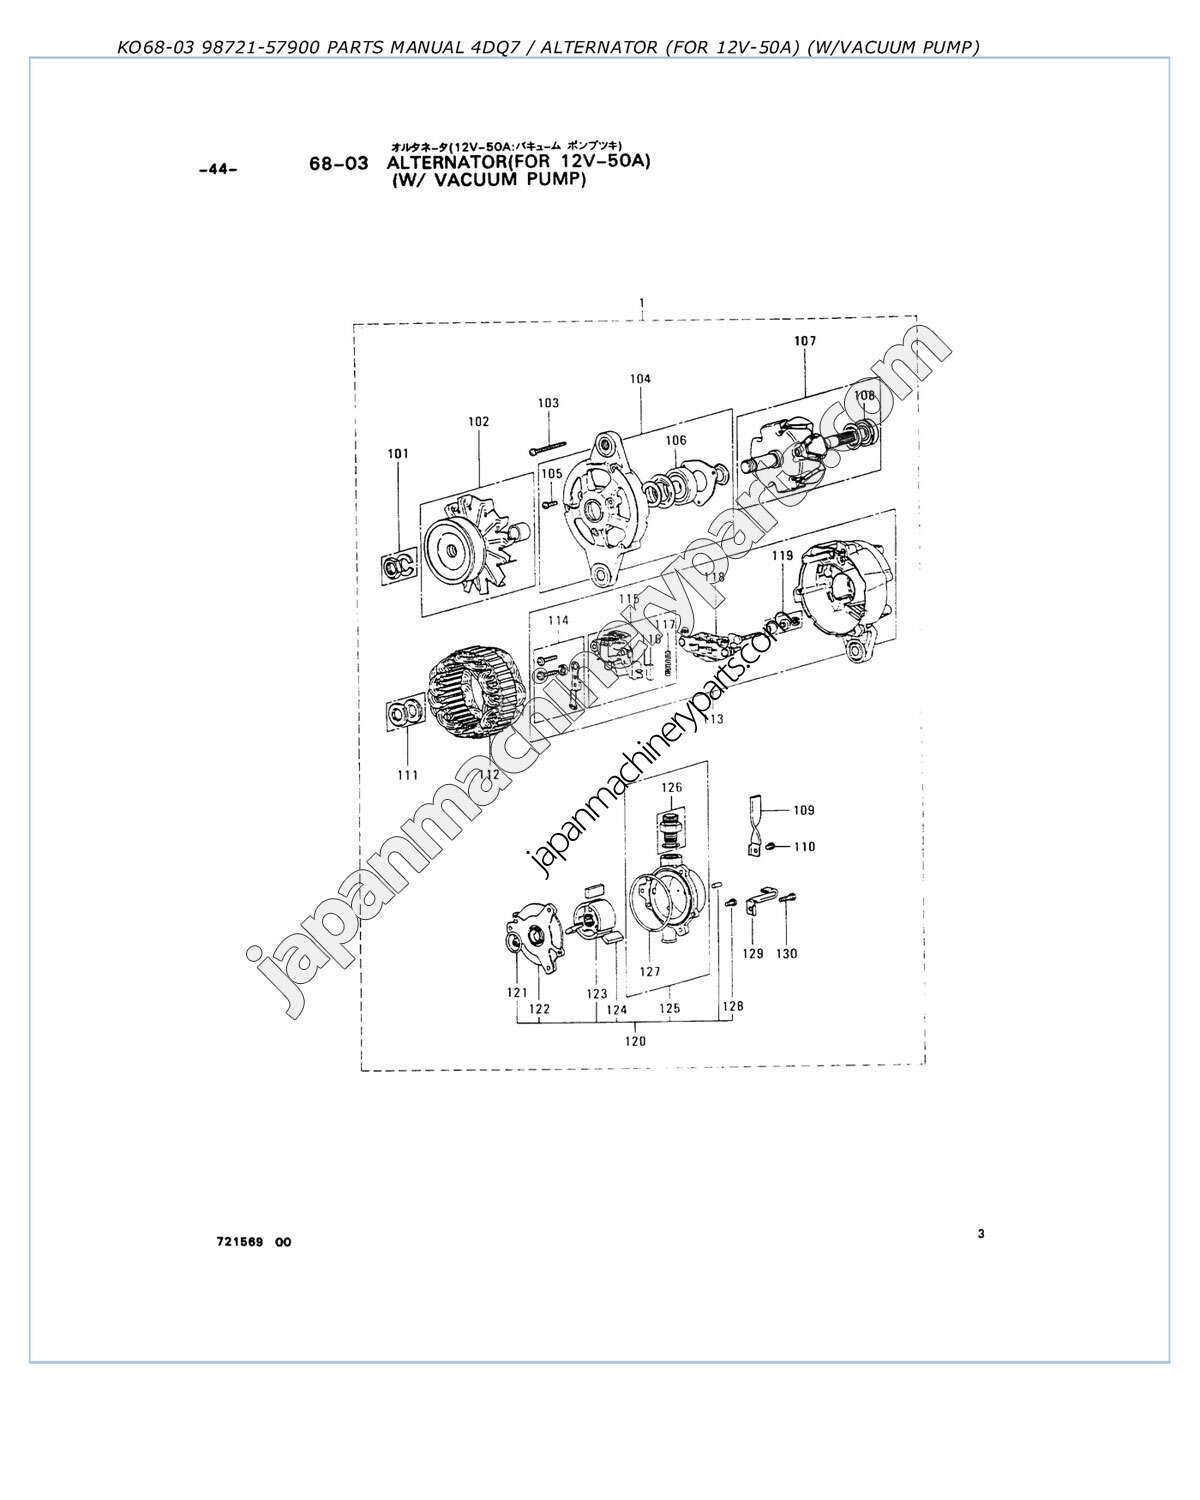 Wiring Agm Hitachi Starter Library 2wire Alternator Diagram Yamaha Parts For 4dq7 2 Wire With Vacuum Pump